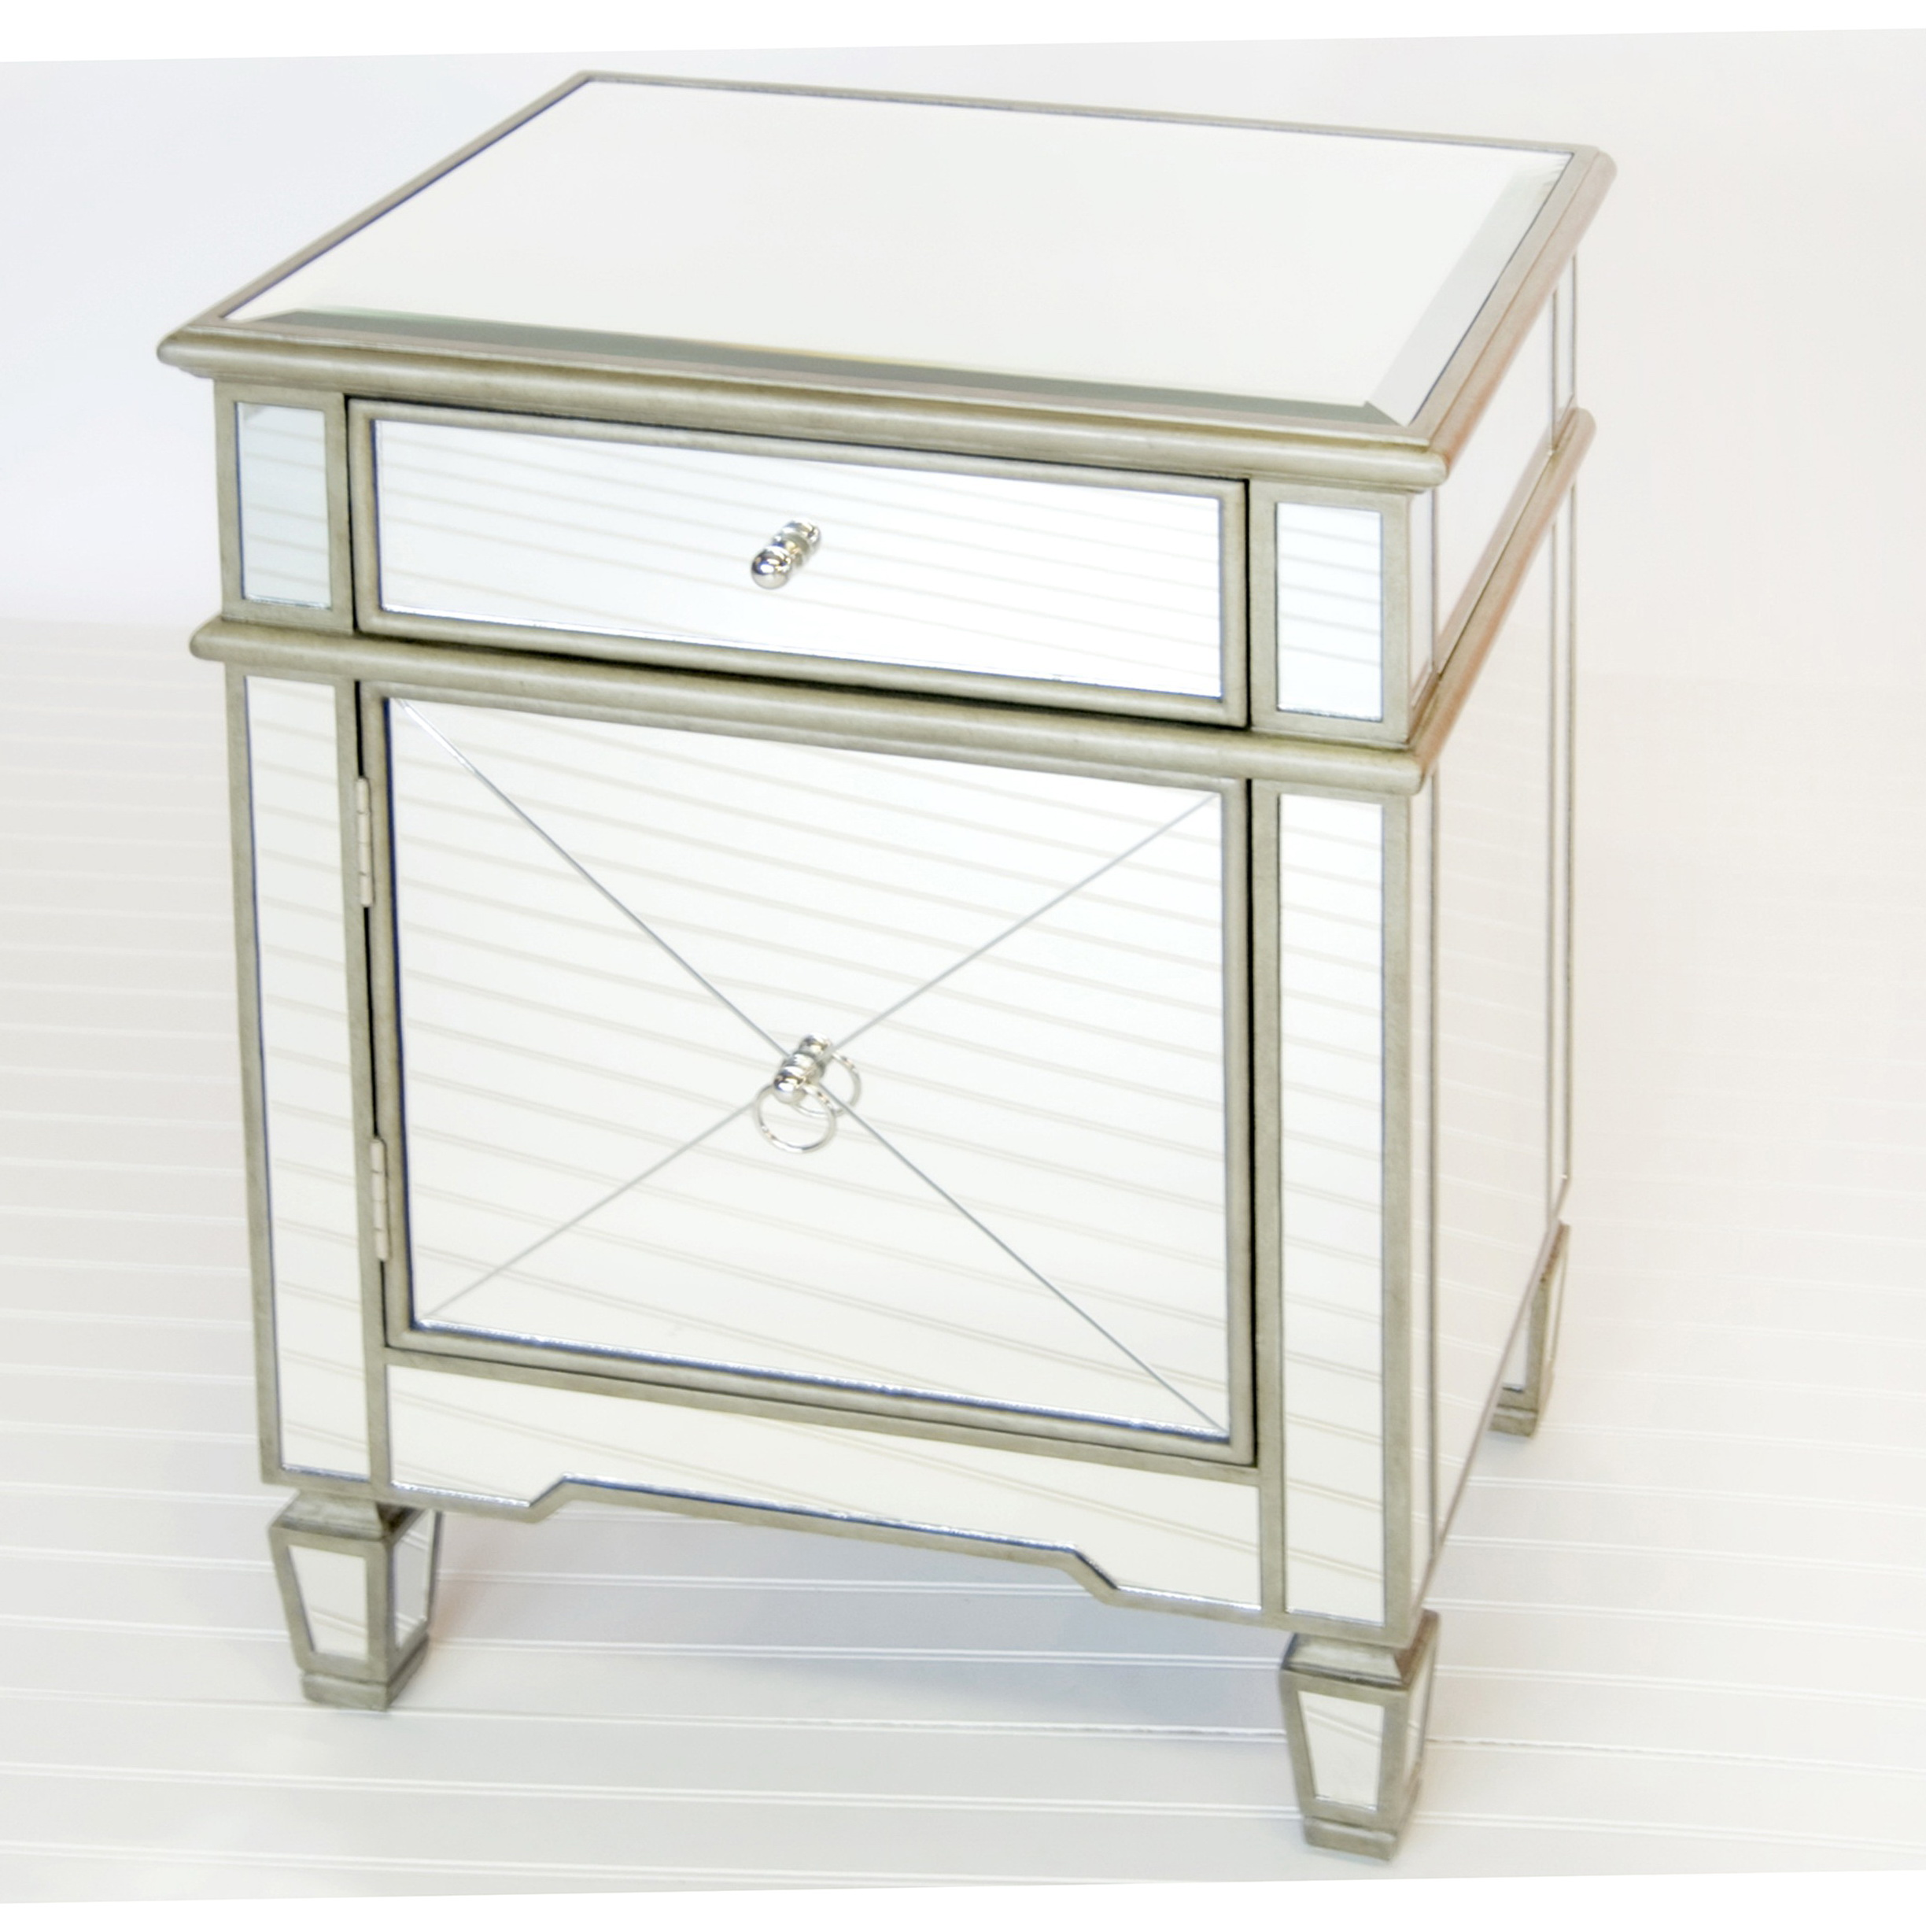 Mirrored End Table With Drawers Home Design Ideas